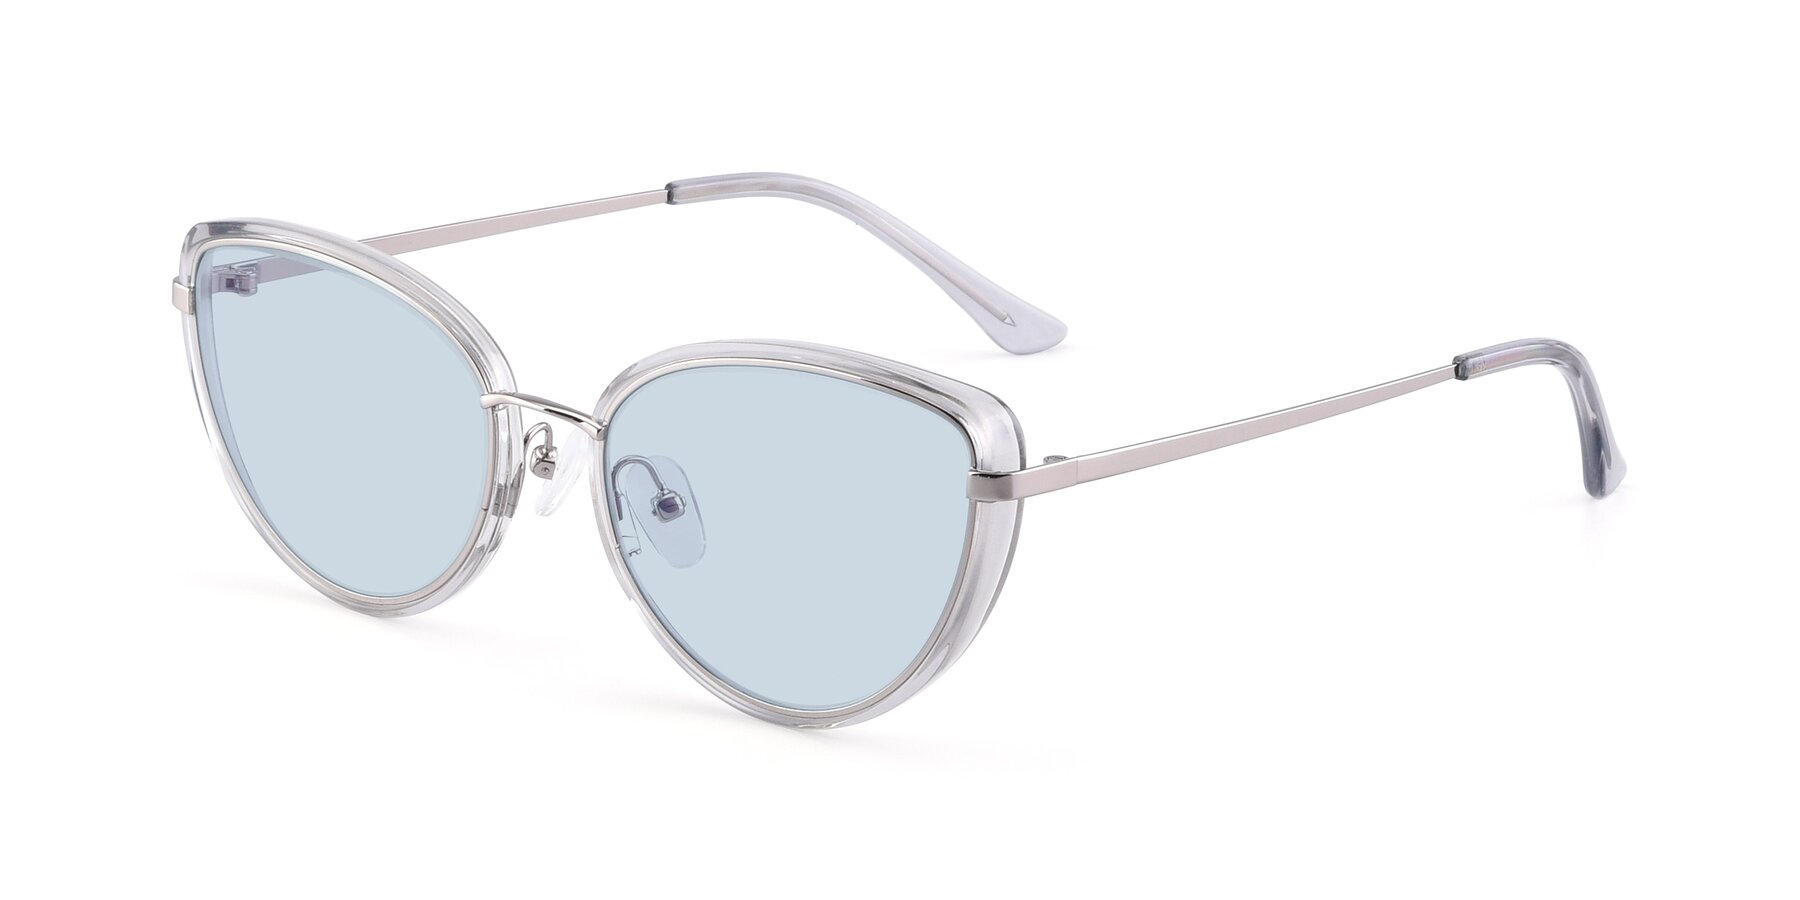 Angle of 17706 in Transparent Grey-Silver with Light Blue Tinted Lenses